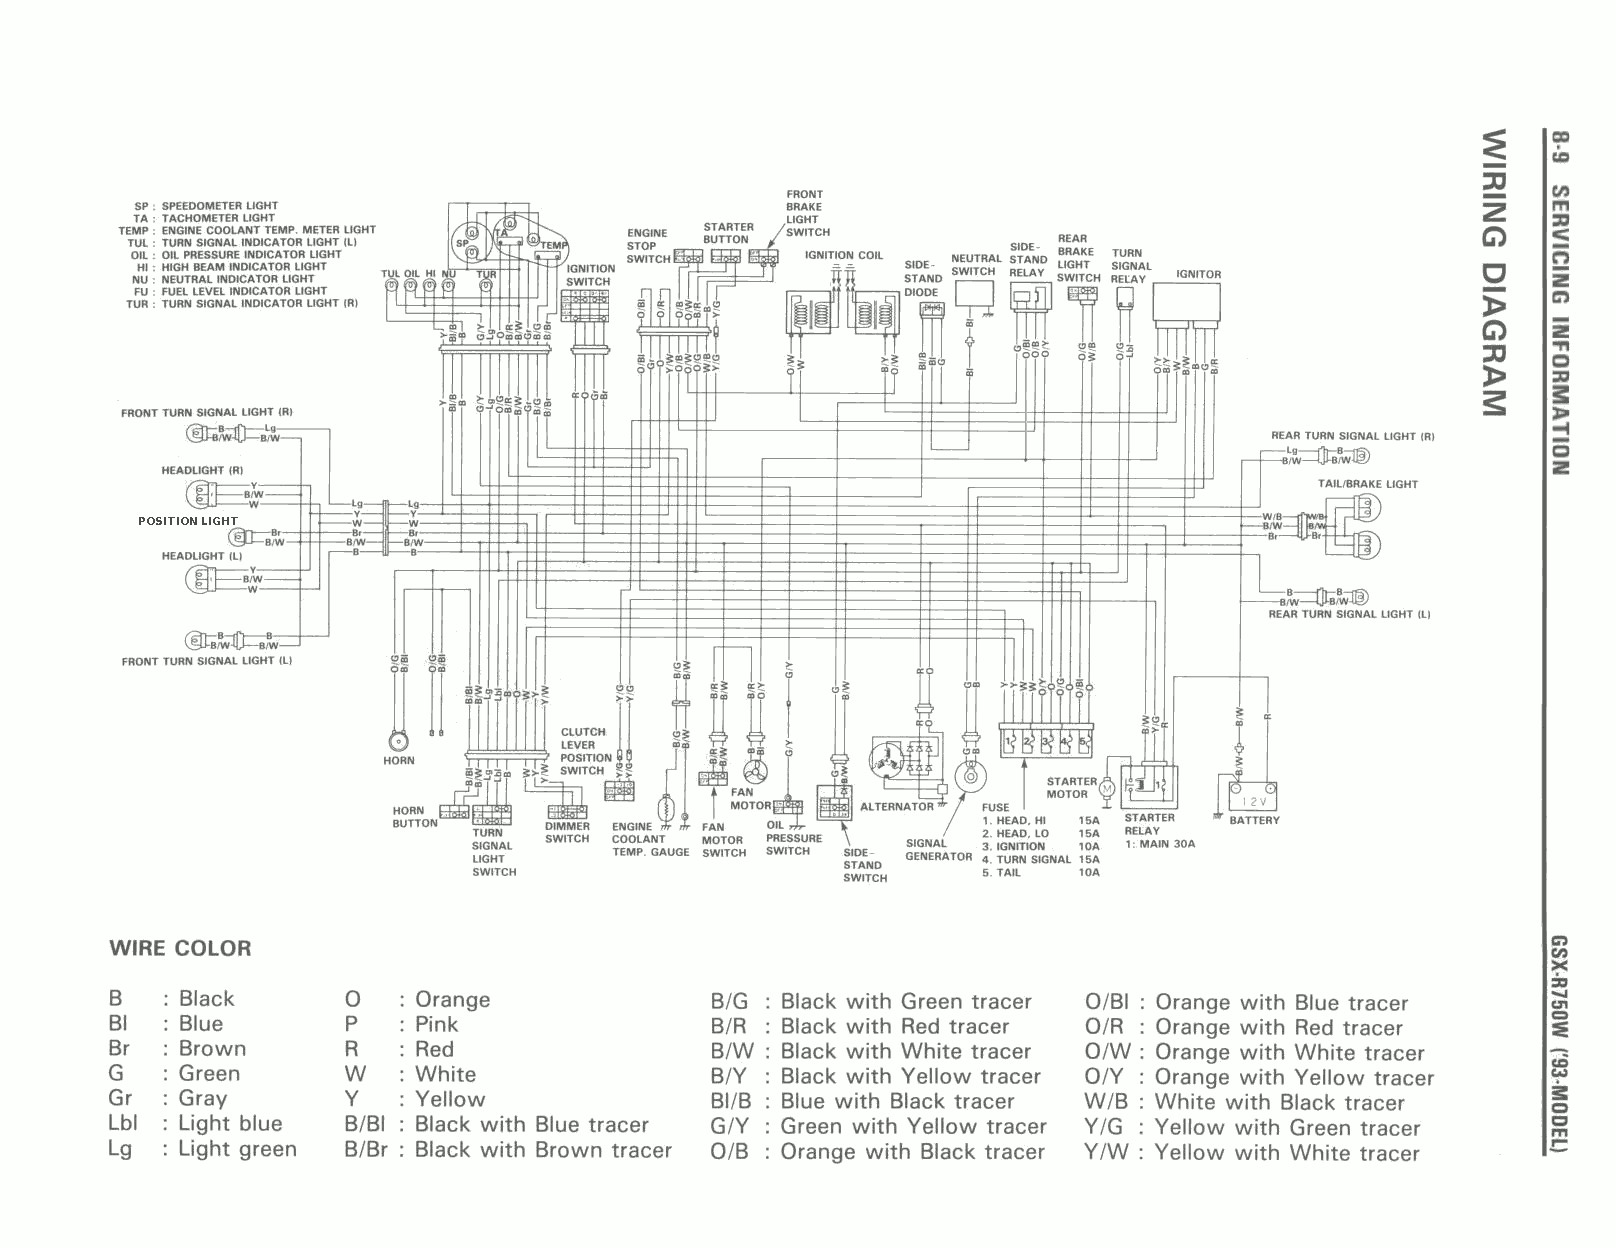 1999 suzuki gsxr 750 wiring diagram honda gx390 electric start gsx 1997 r600v swift 1998